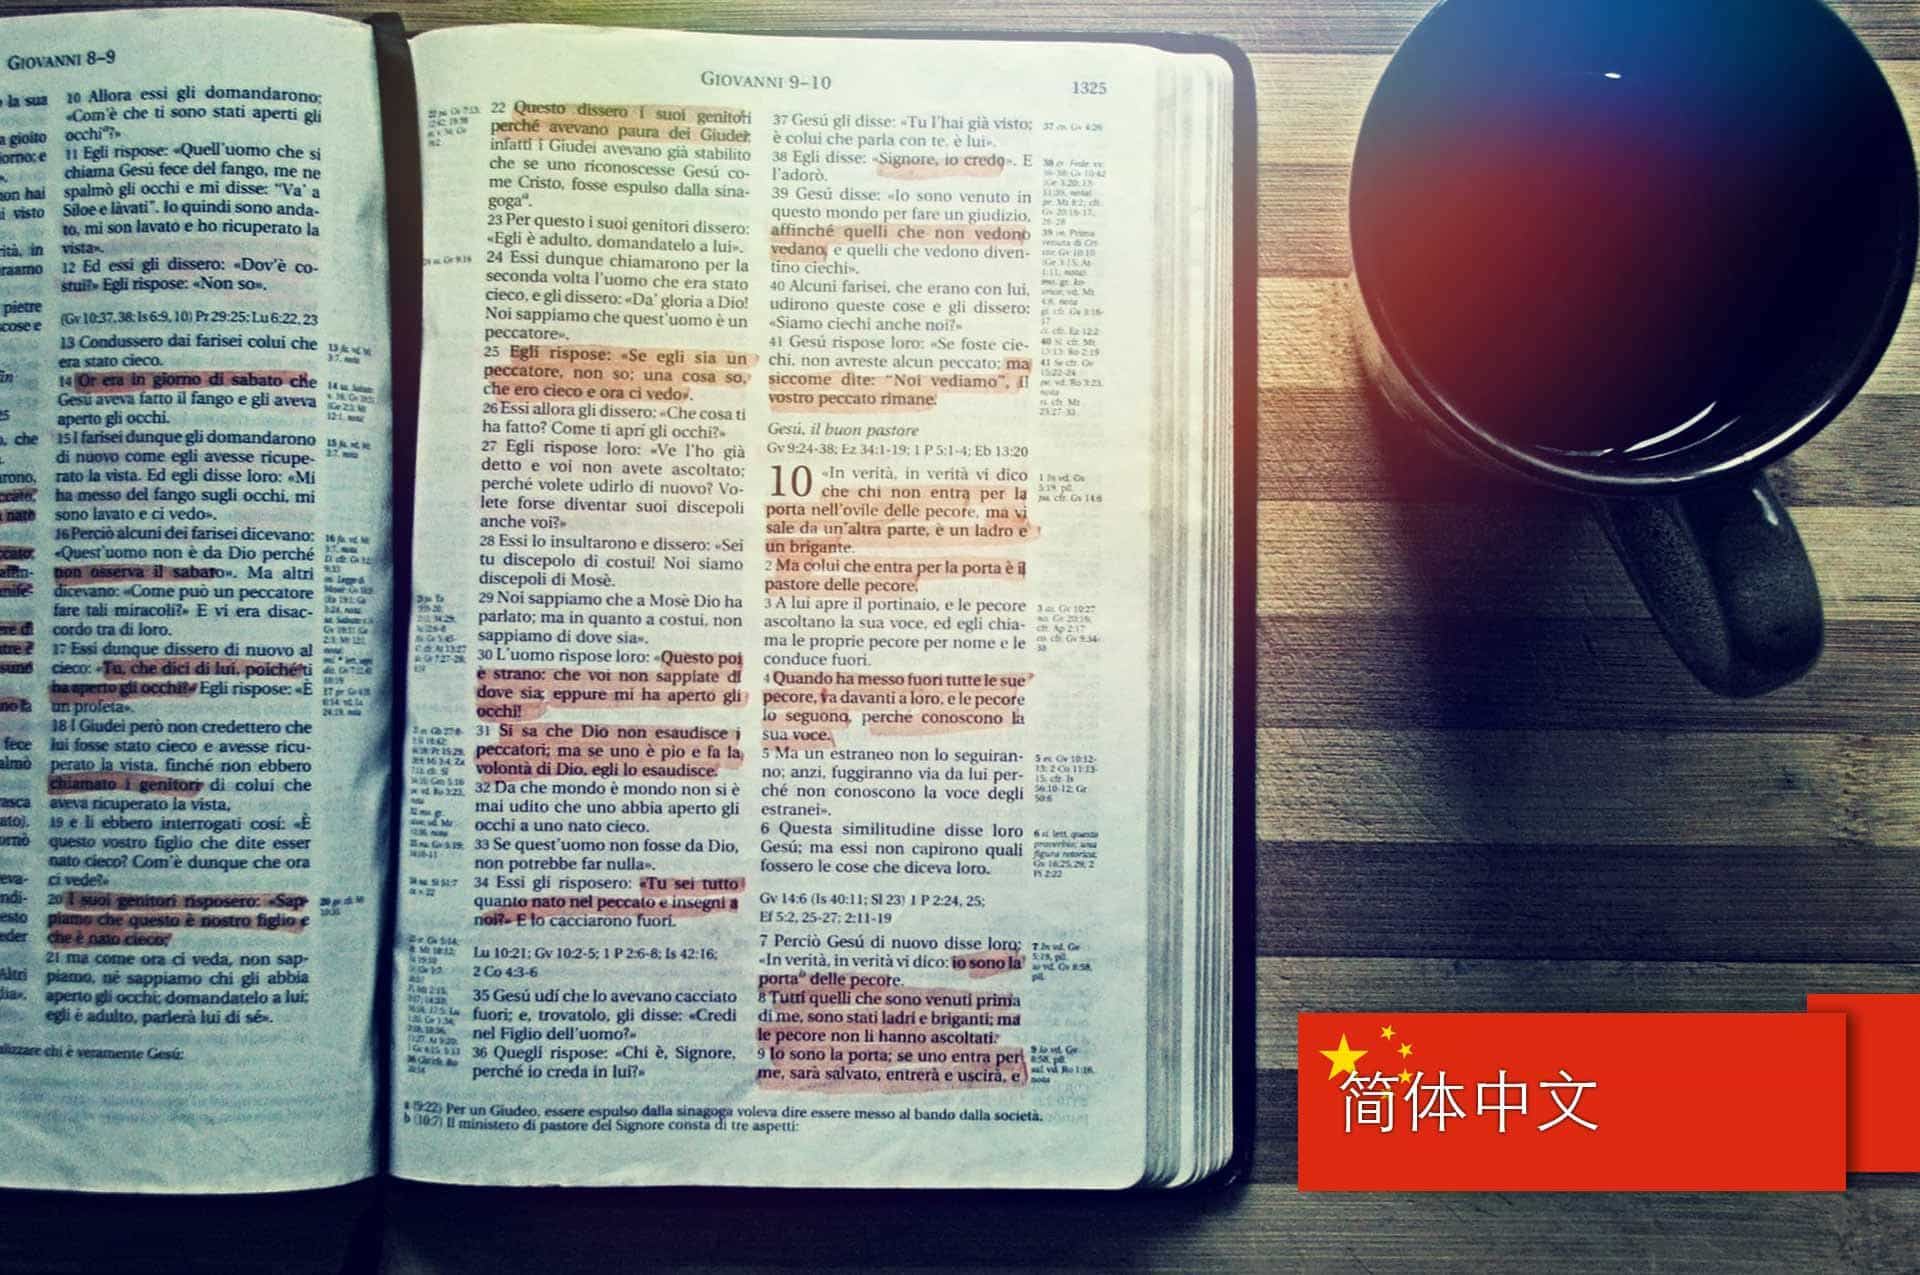 读懂圣经 – 道成肉身的密匙 (Understanding the Bible – The Incarnation Code) – Simplified Chinese